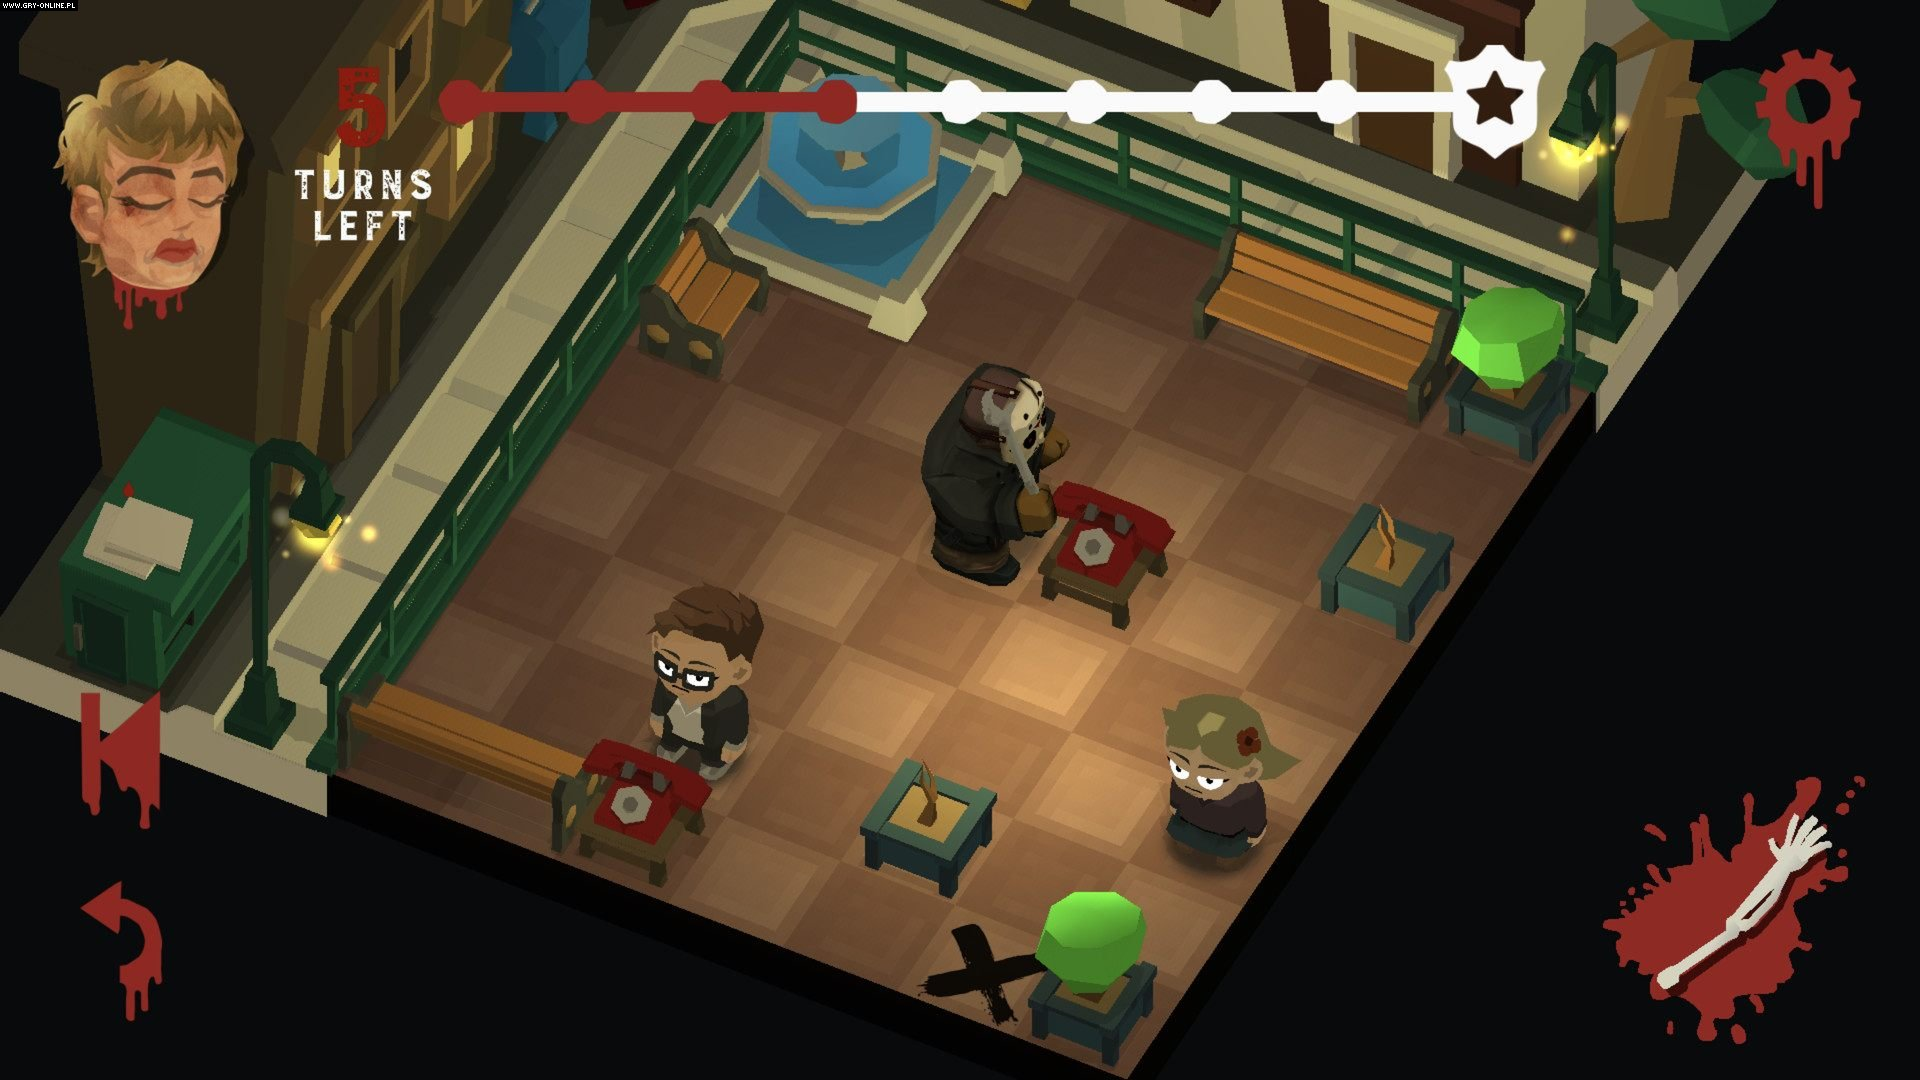 Friday the 13th: Killer Puzzle PC, AND, iOS Gry Screen 2/22, Blue Wizard Digital